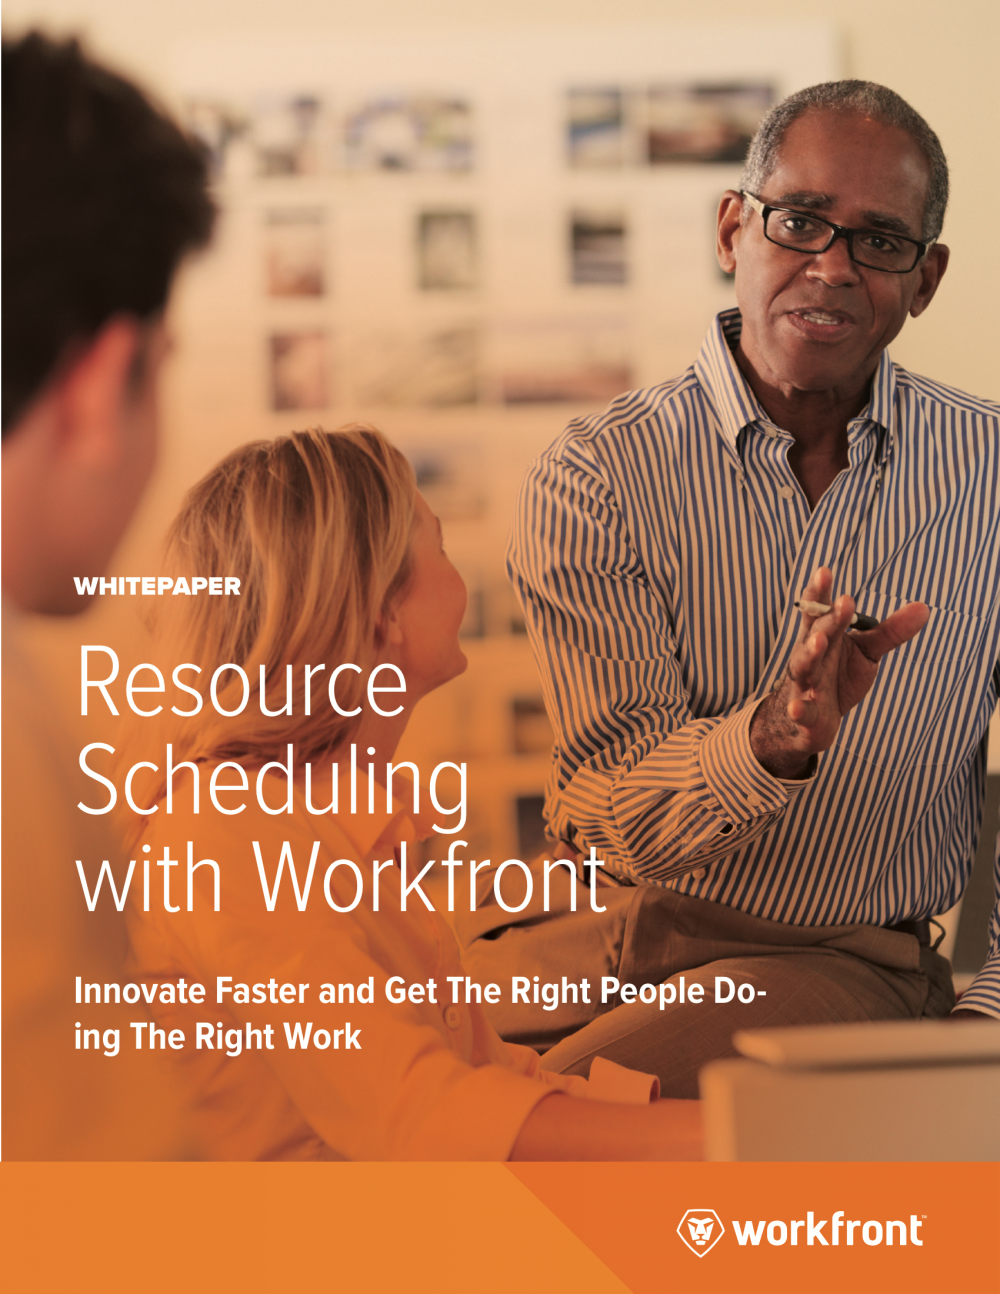 Resource Scheduling with Workfront